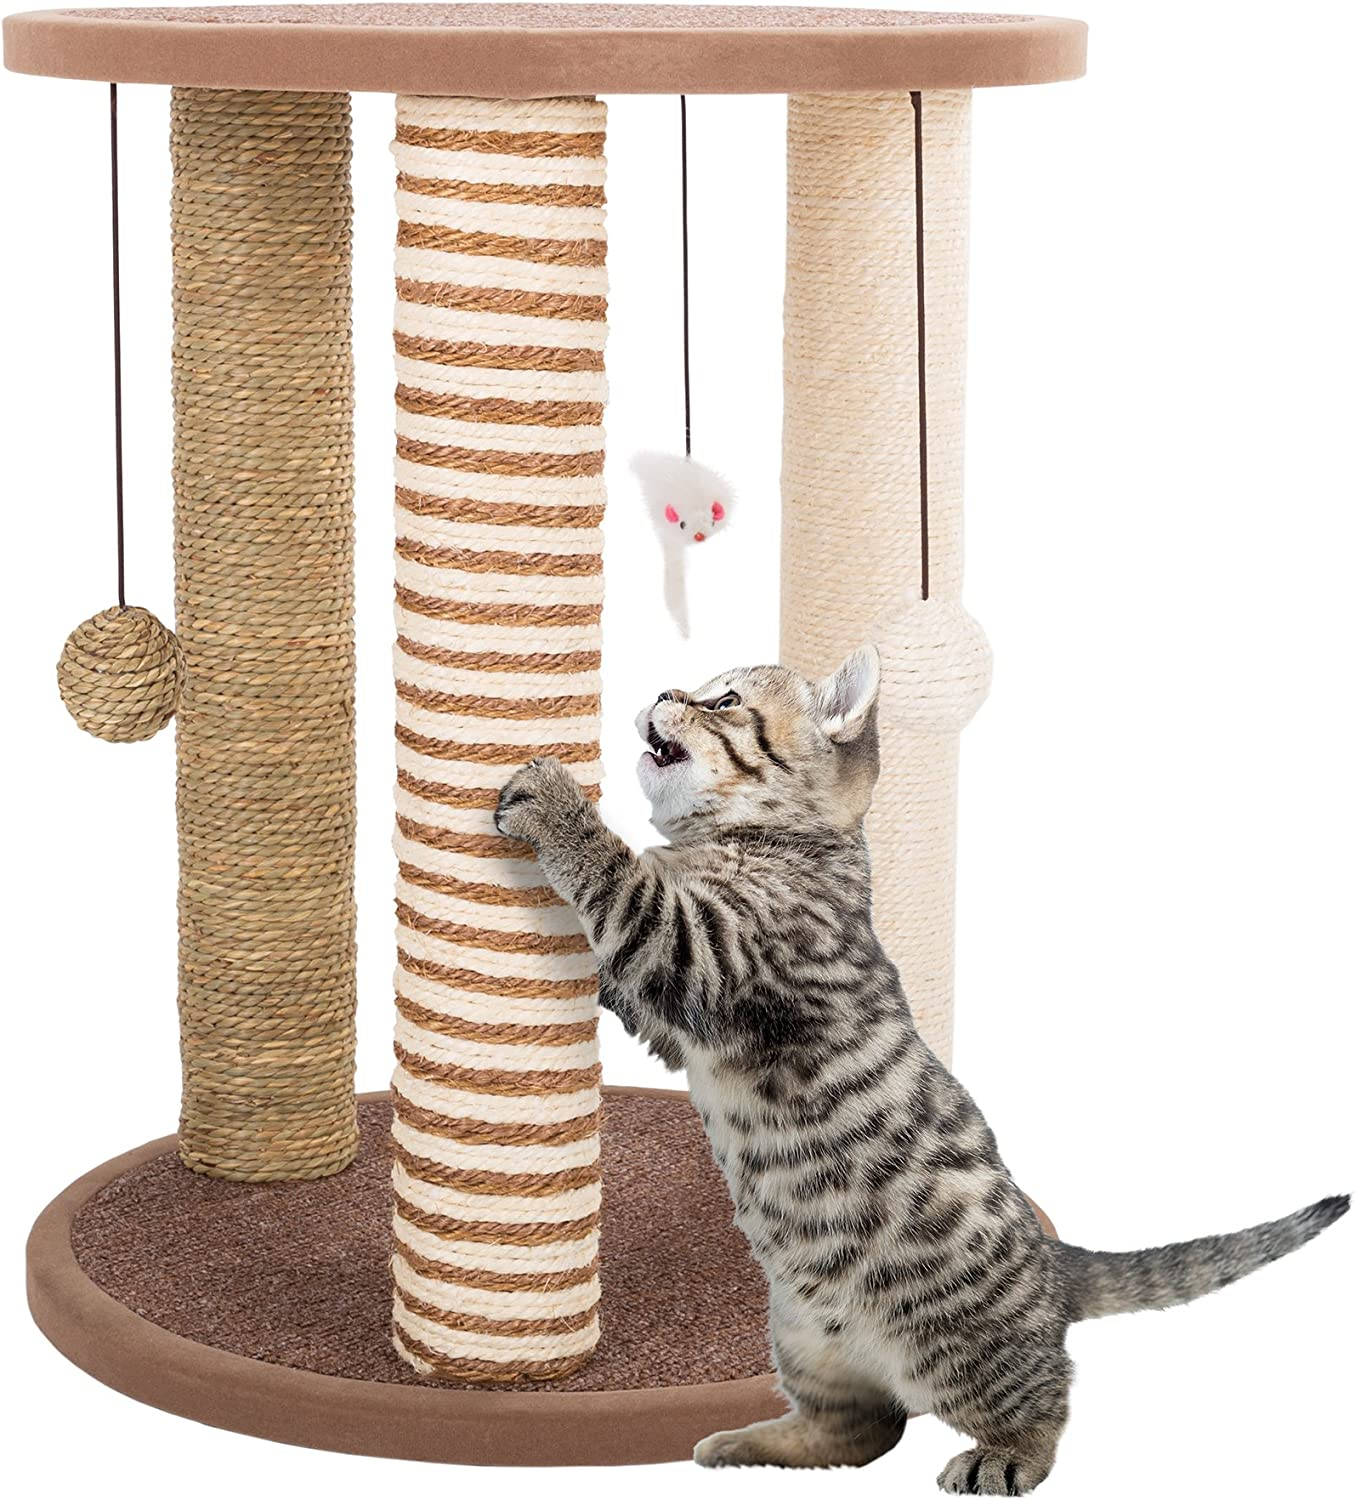 Cat Scratching Post Tower With 3 Scratcher Posts Carpeted Base Play Area And Perch Furniture Scratching Deterrent For Indoor Cats By Petmaker Tan Pet Supplies